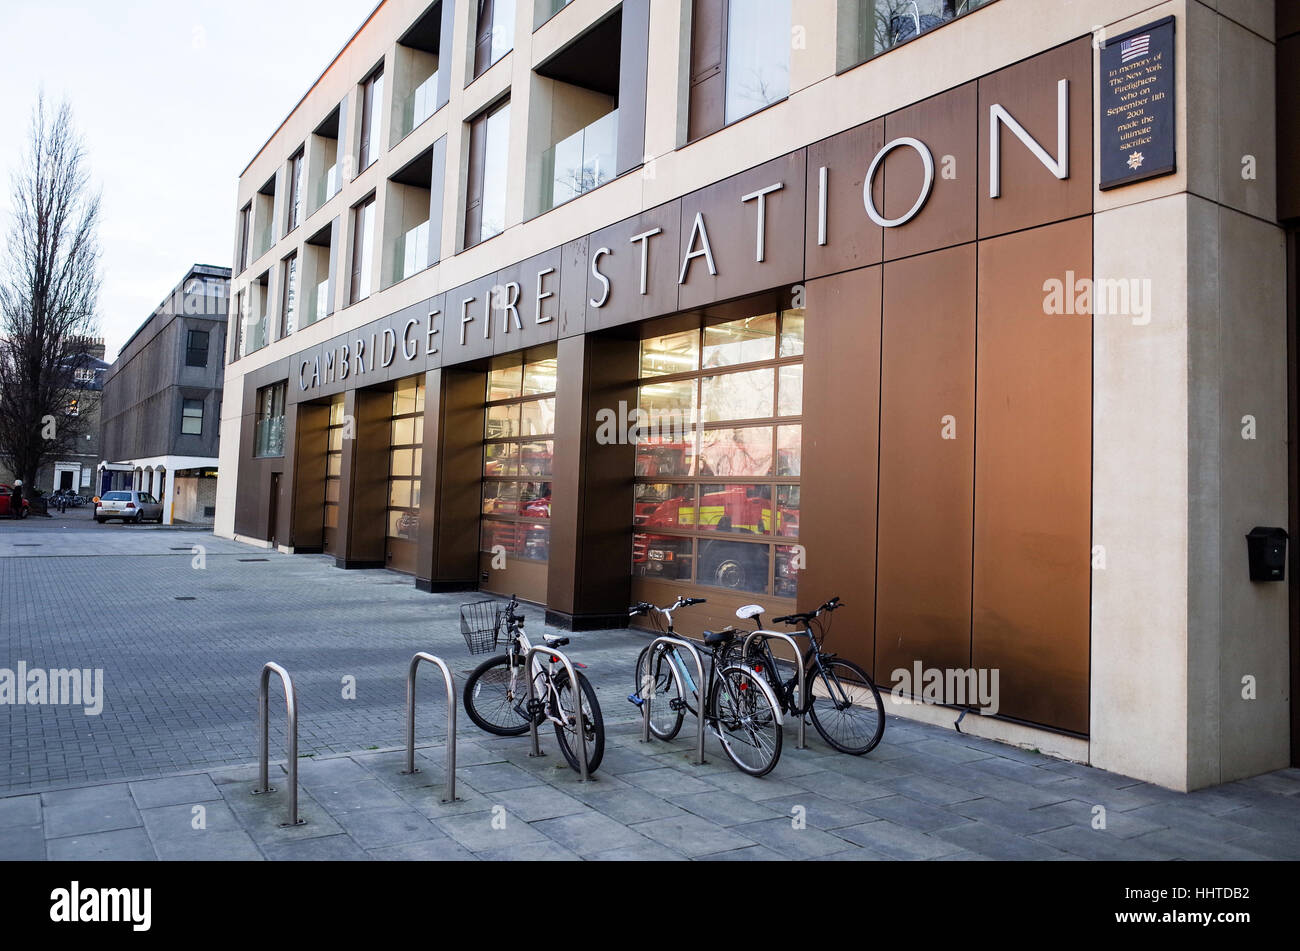 Cambridge Fire Station - Opened 2013 - redeveloped in partnership between the Fire Authority and urban developers - Stock Image